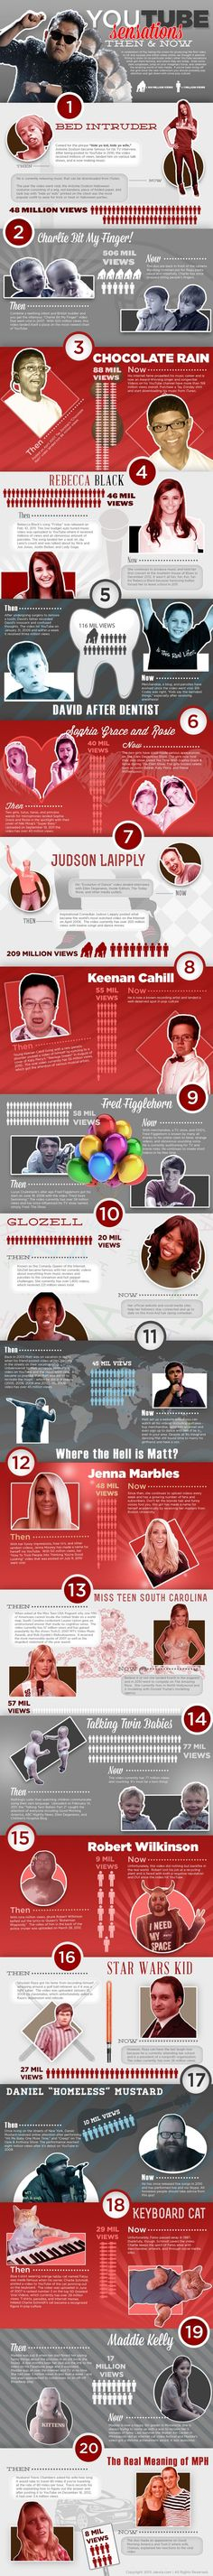 Youtube Sensations - Where Are They Now? Infographic